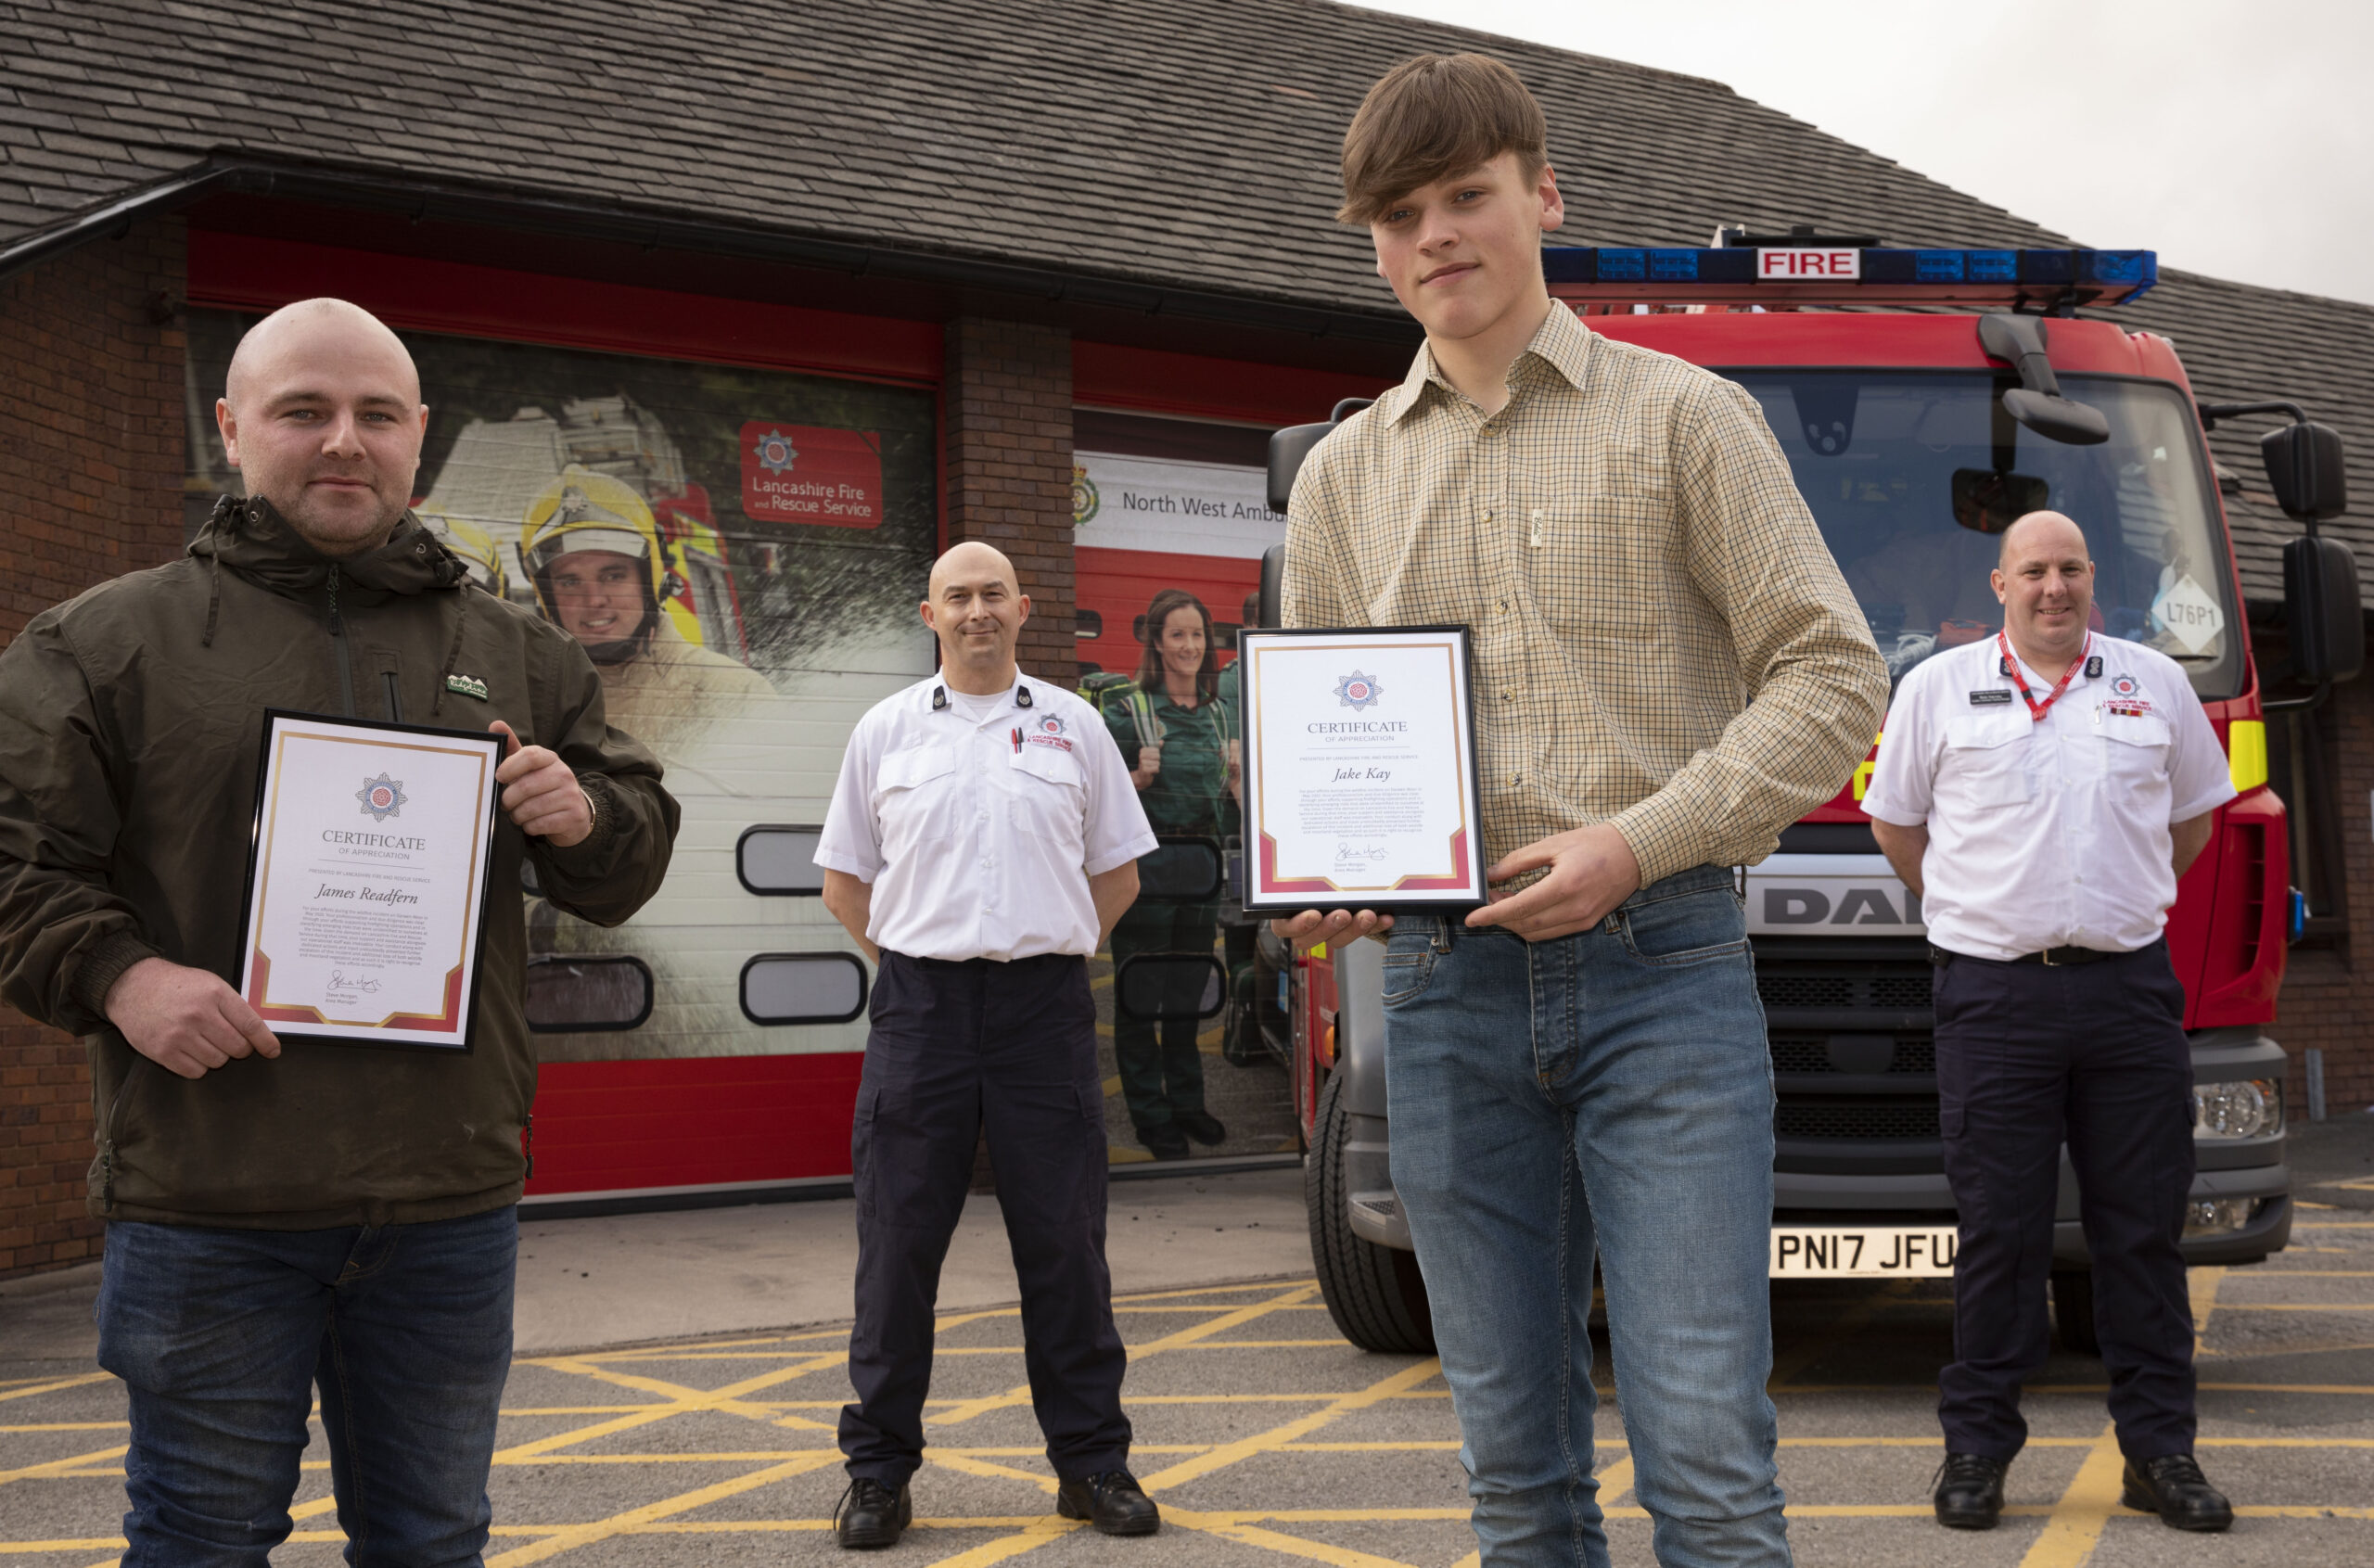 Presentation to James Readfern and Jake Kay in front of Darwen Fire Station and fire engine with Group Manager Wilson and Station Manager Harvey